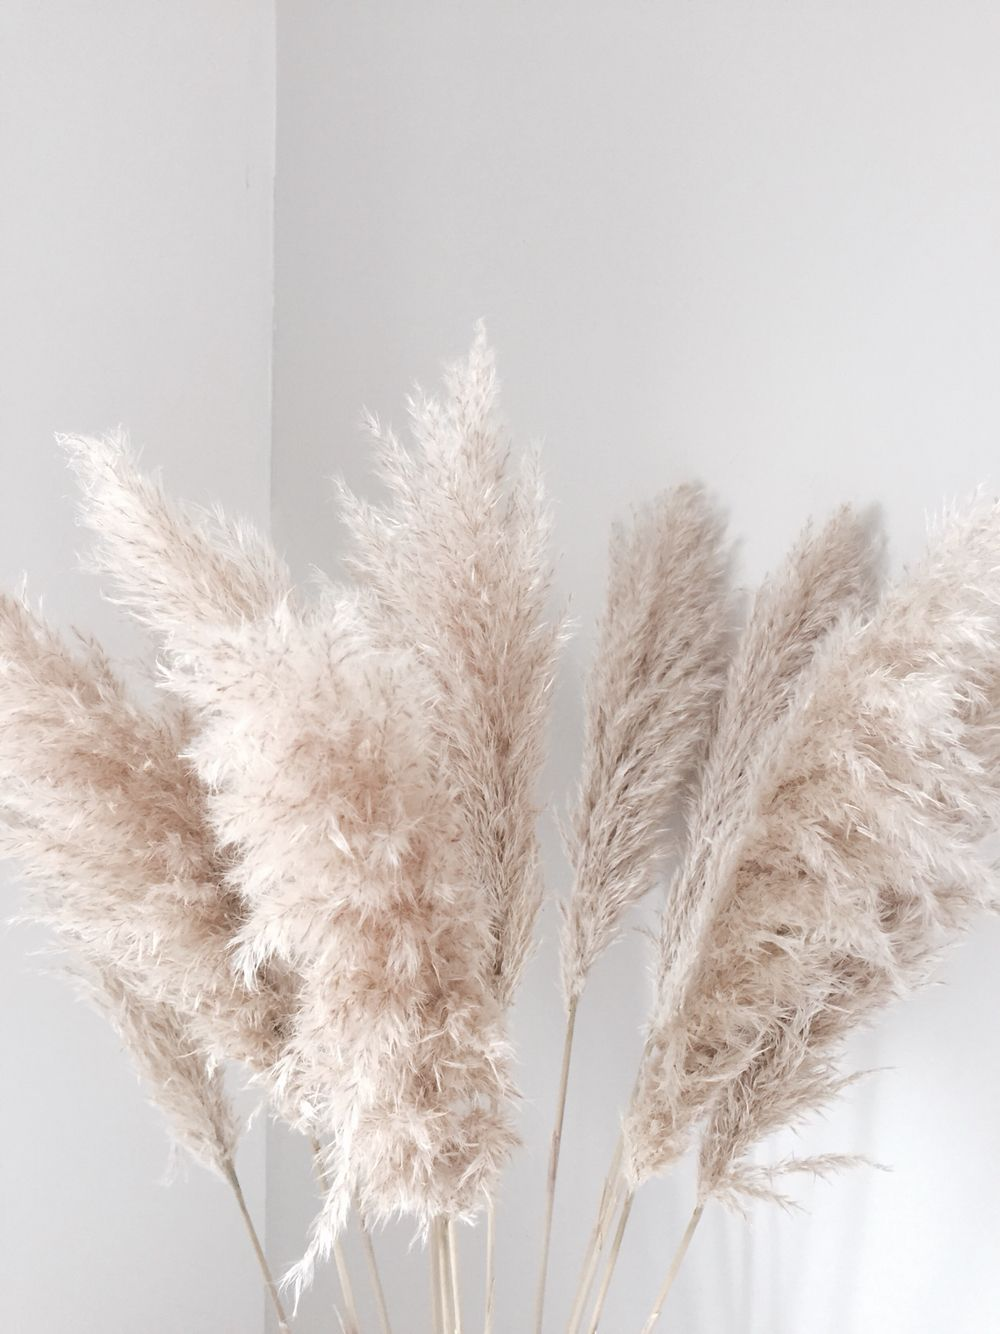 Weddings With Pampas Grass Curious Country Creations Crafty Life Wedding Flower Trends Dried Flowers Pampas Grass